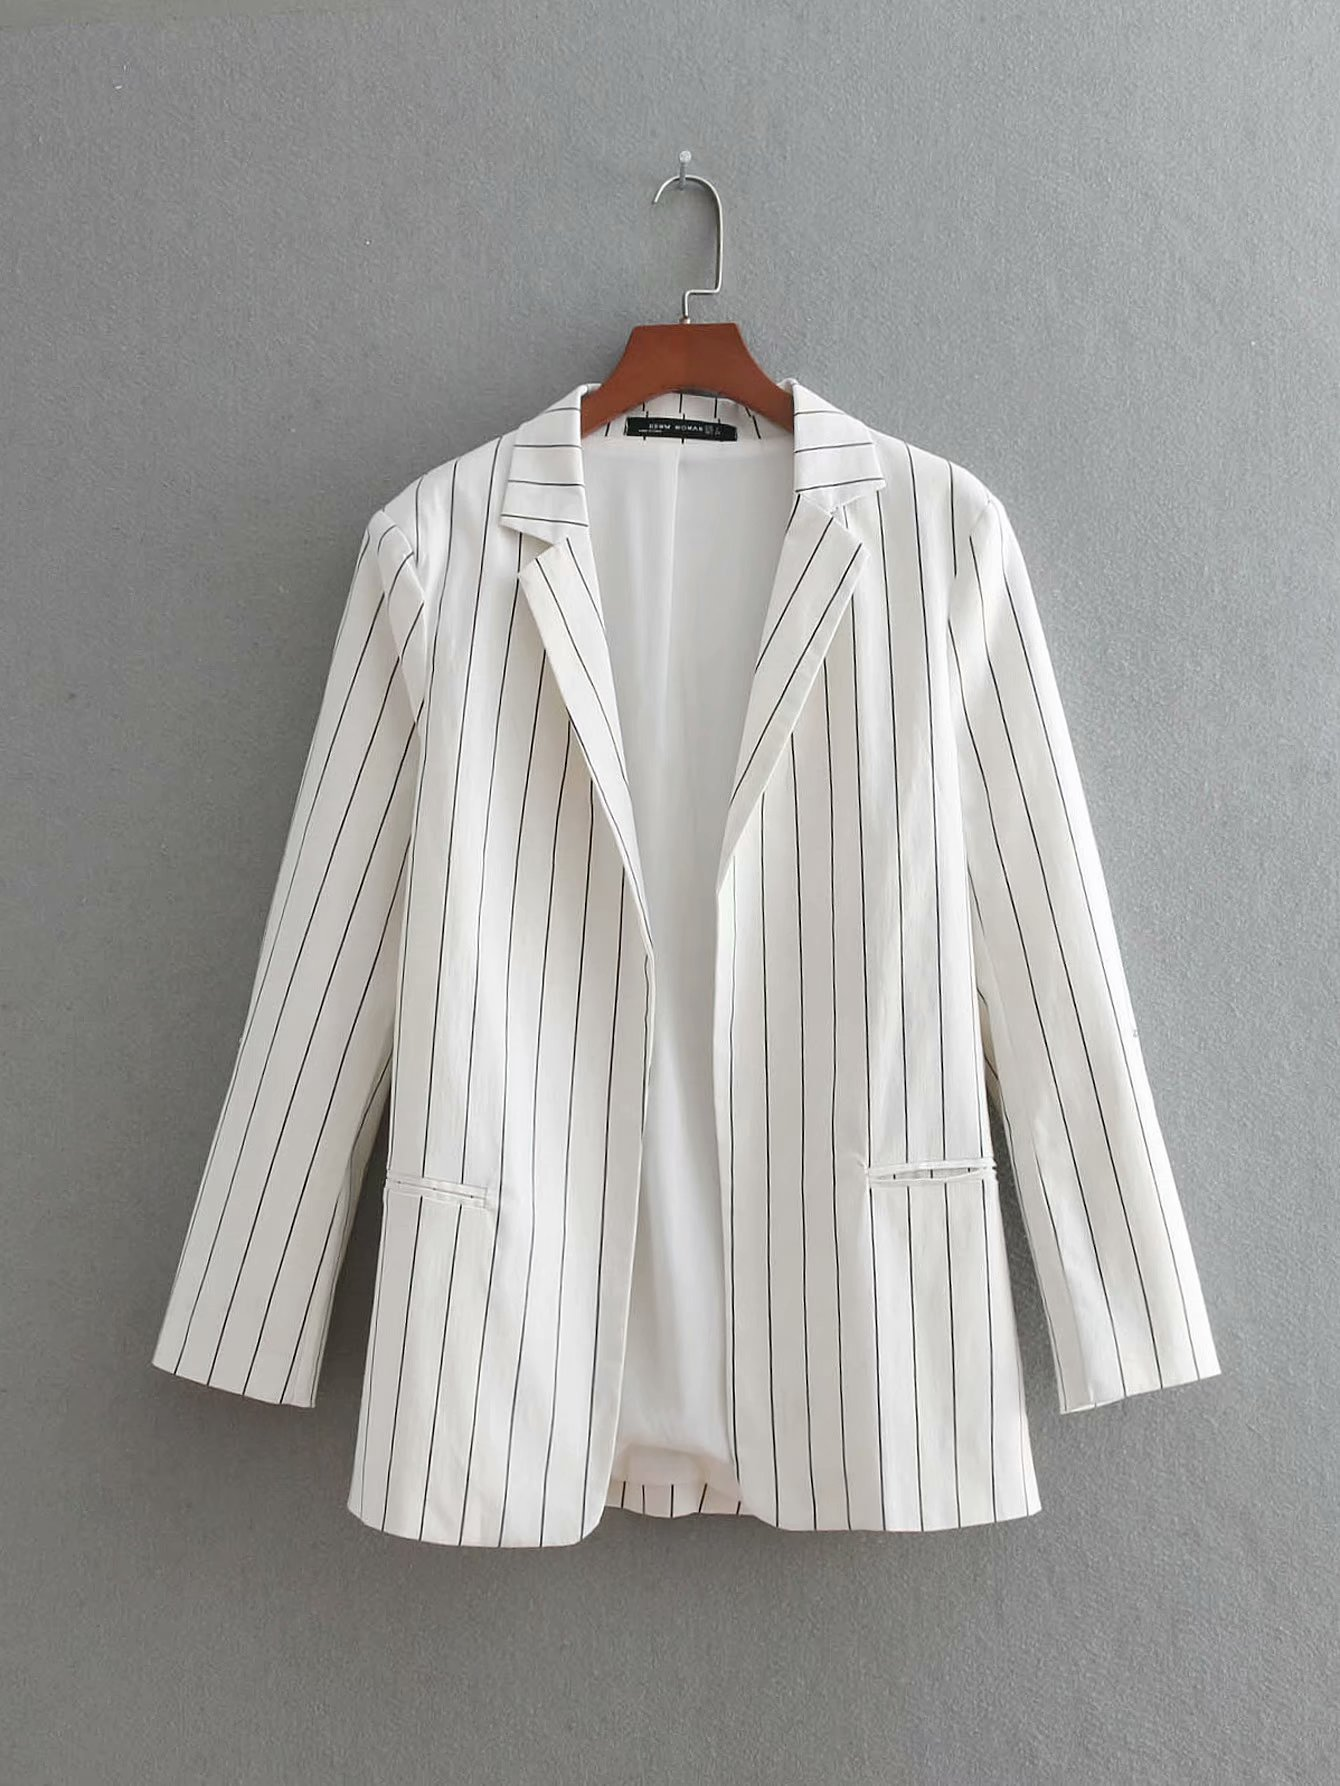 Set female 2018 autumn new temperament fashion loose striped small suit jacket + trousers elegant two-piece casual women